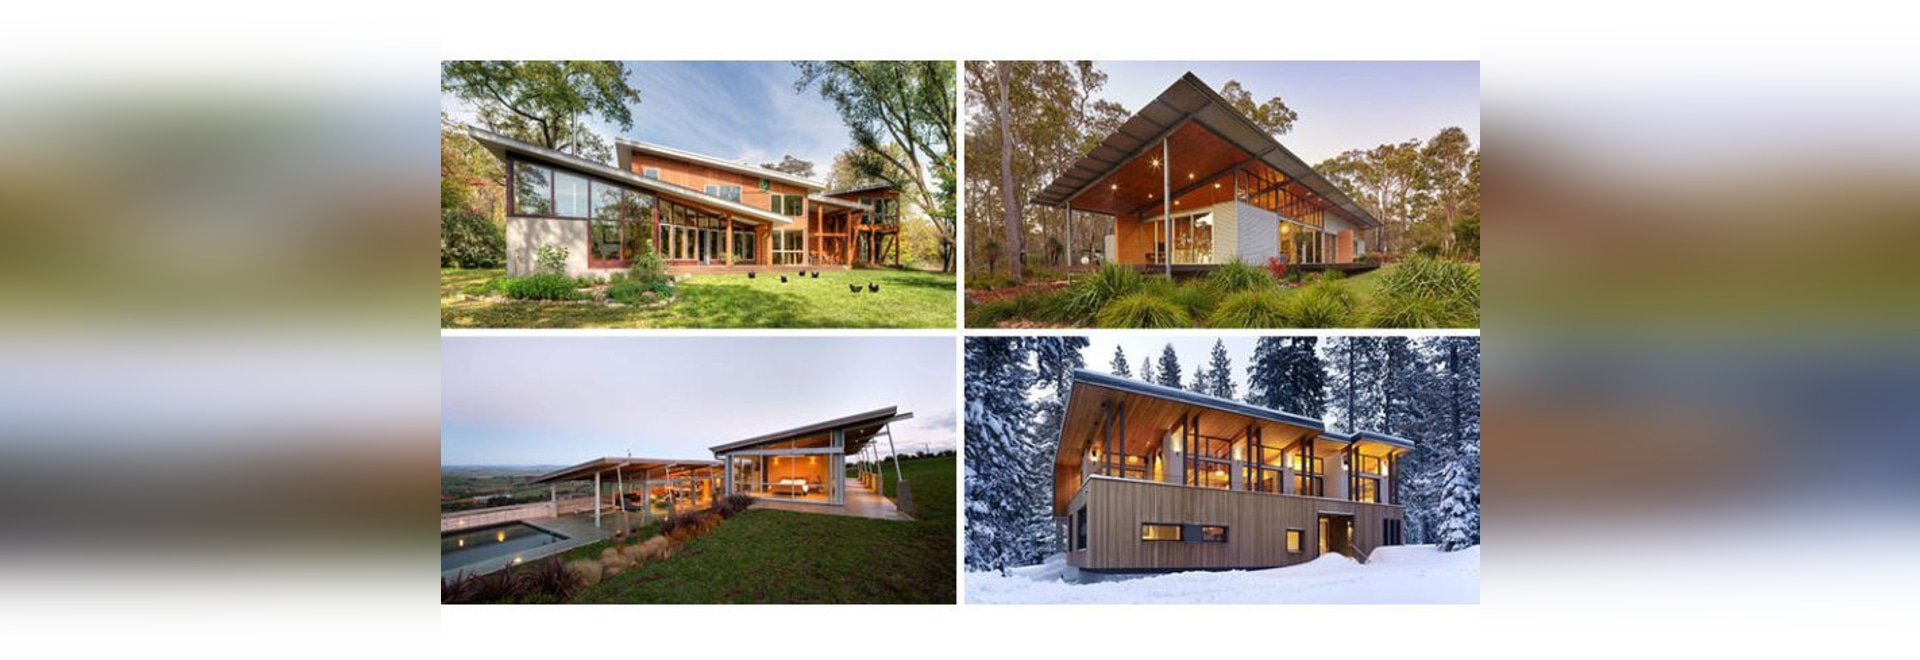 16 Examples Of Modern Houses With A Sloped Roof 1148 Nw Leary Way Seattle Wa 98107 Usa